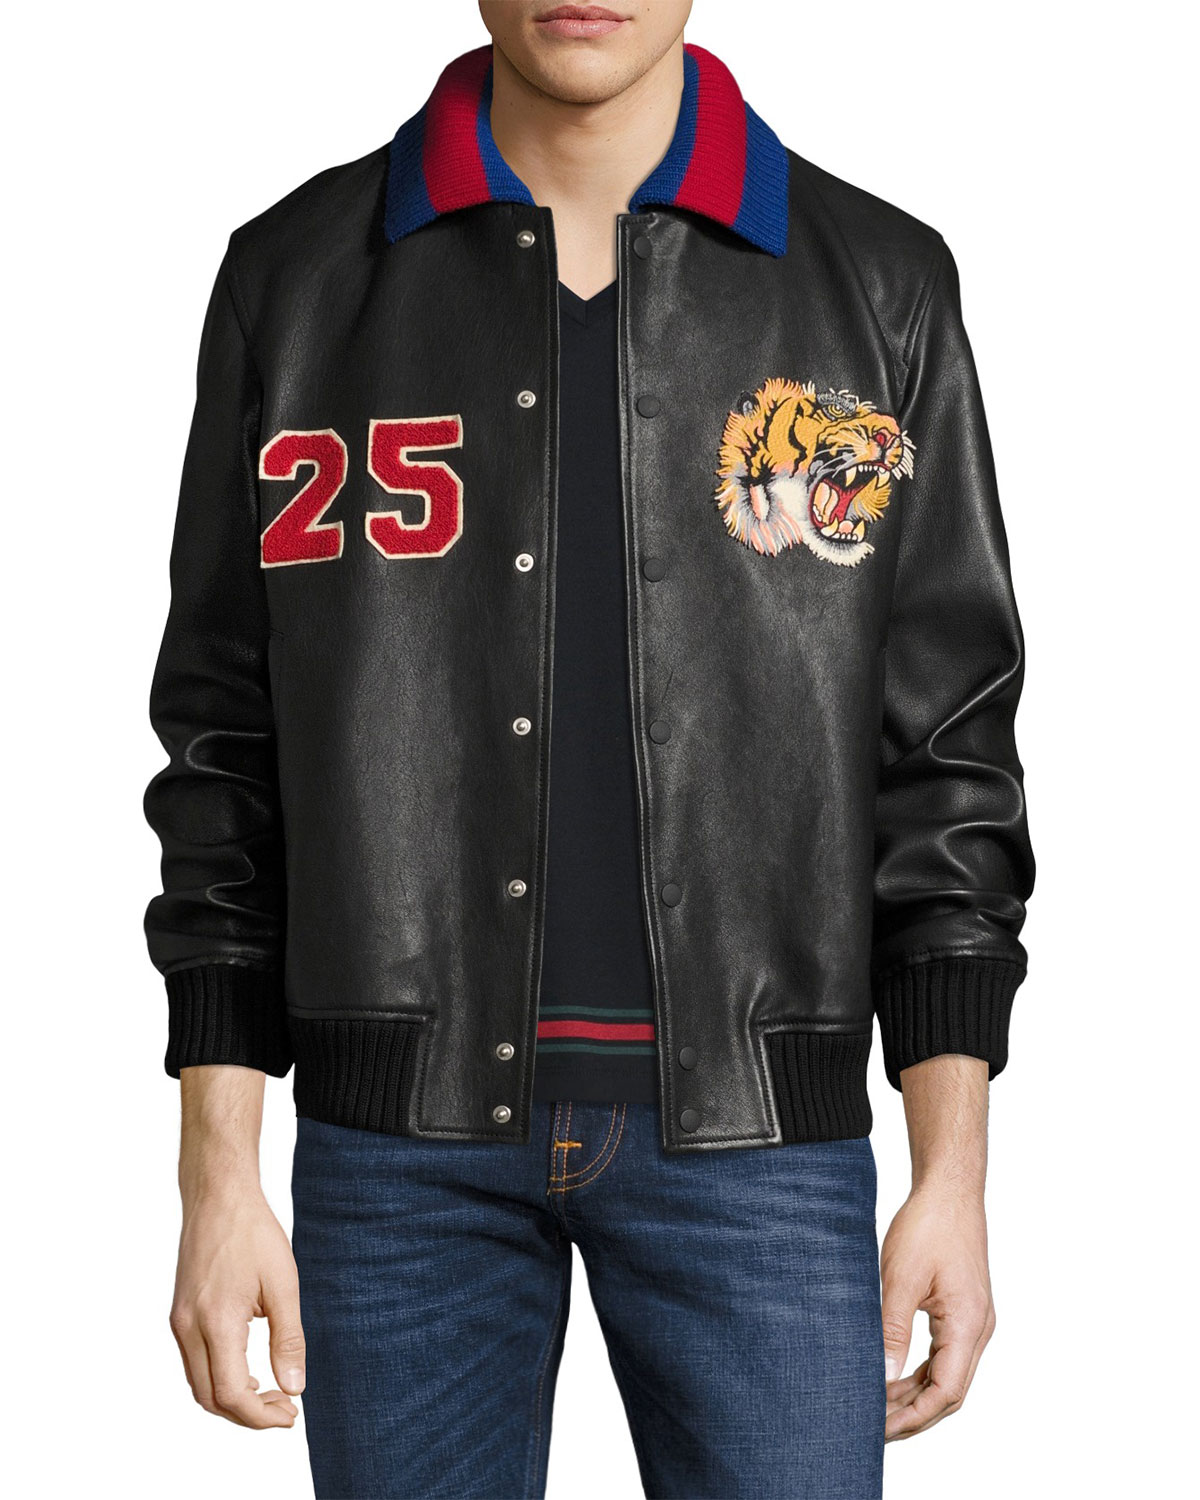 Gucci Leather Bomber Jacket w Embroideries 66e4f17b9957